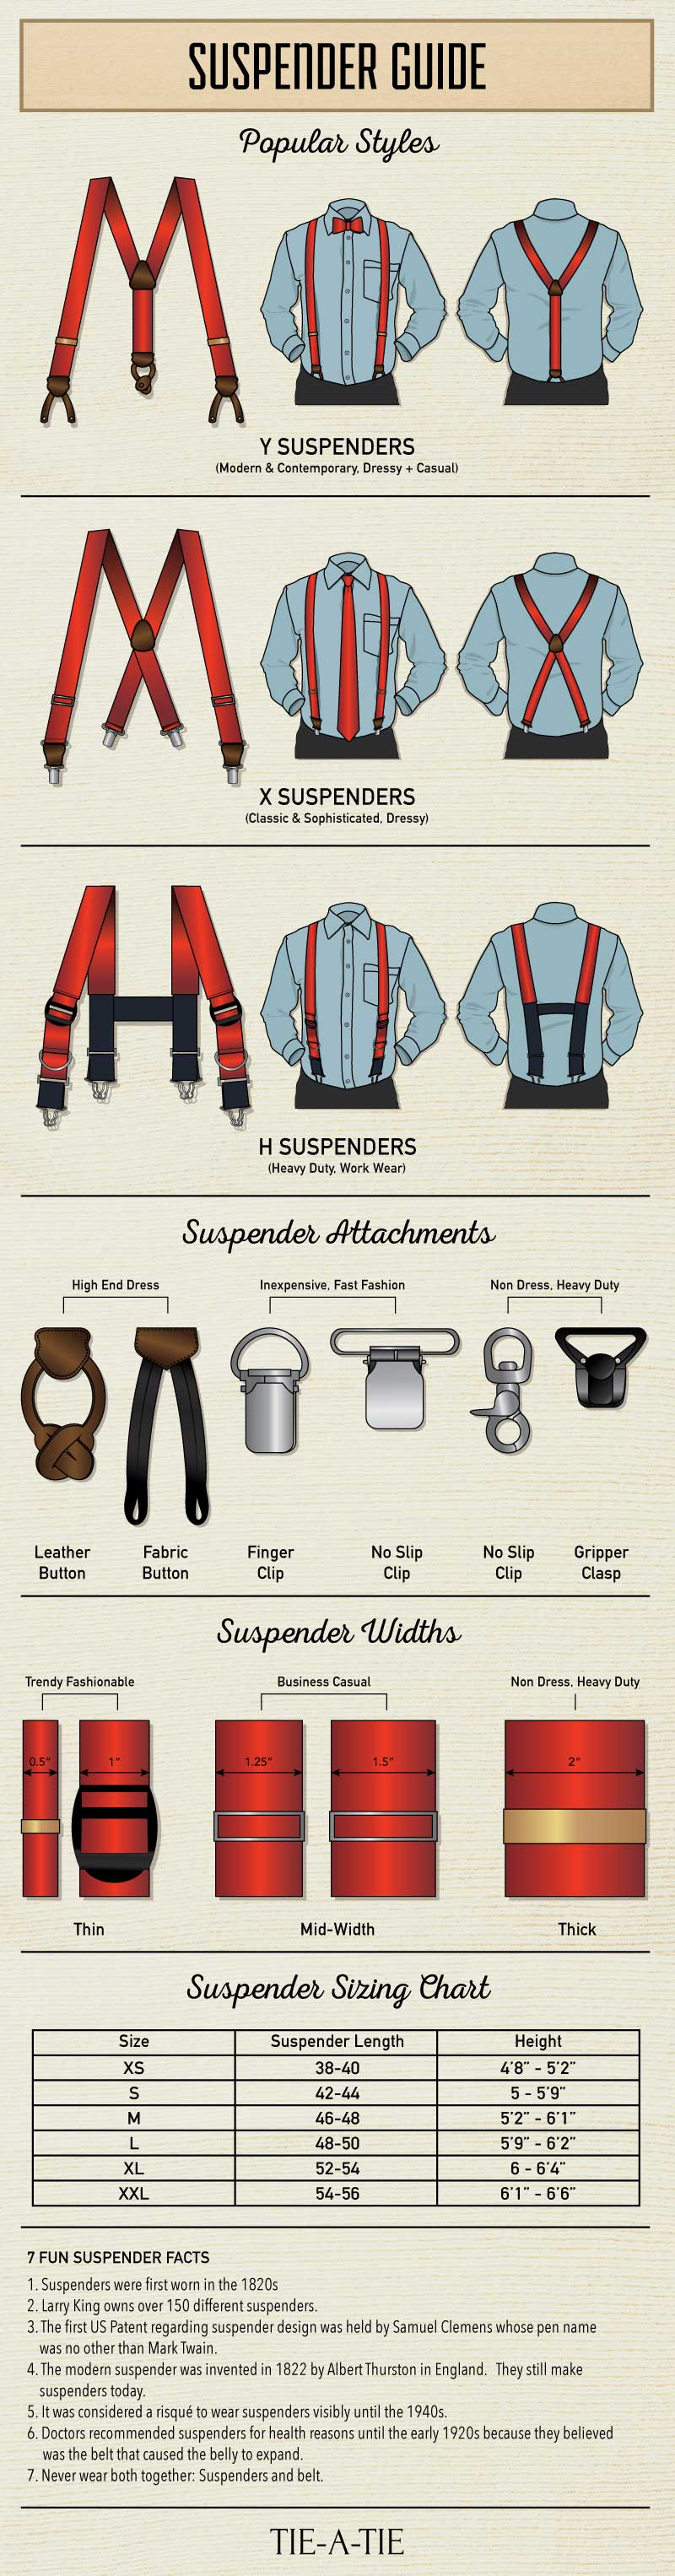 Guide On How To Wear Suspenders